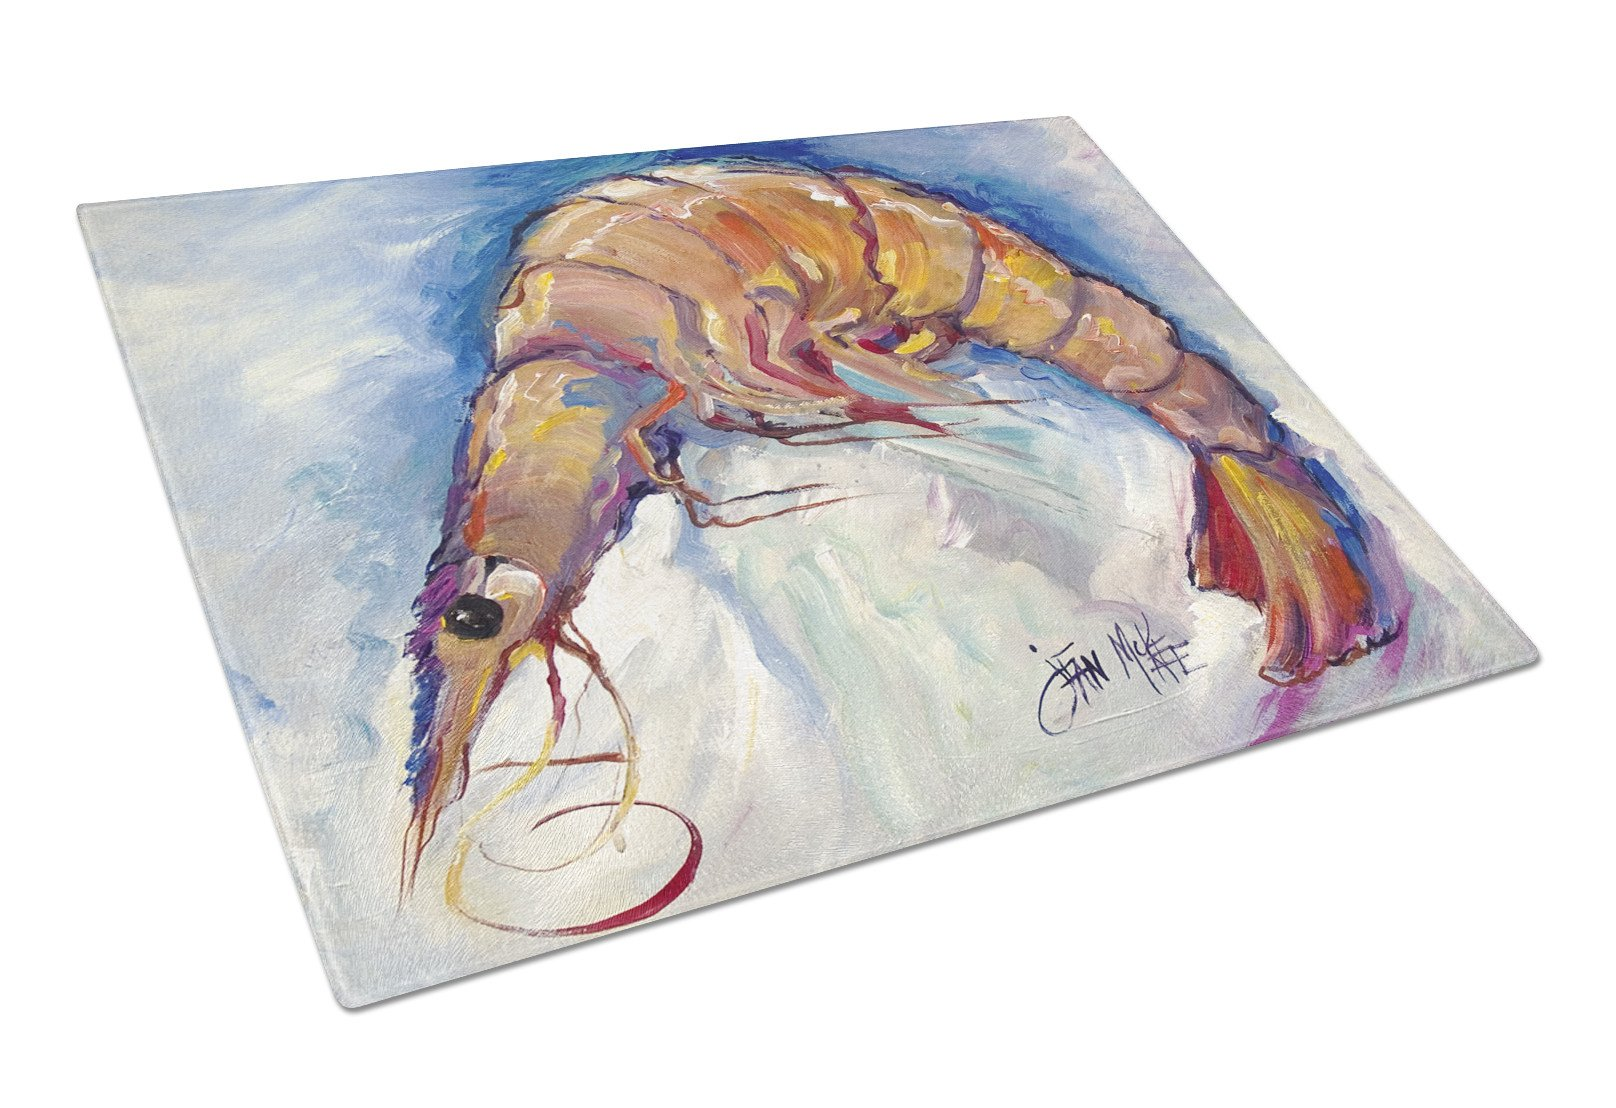 Shrimp Glass Cutting Board Large JMK1112LCB by Caroline's Treasures